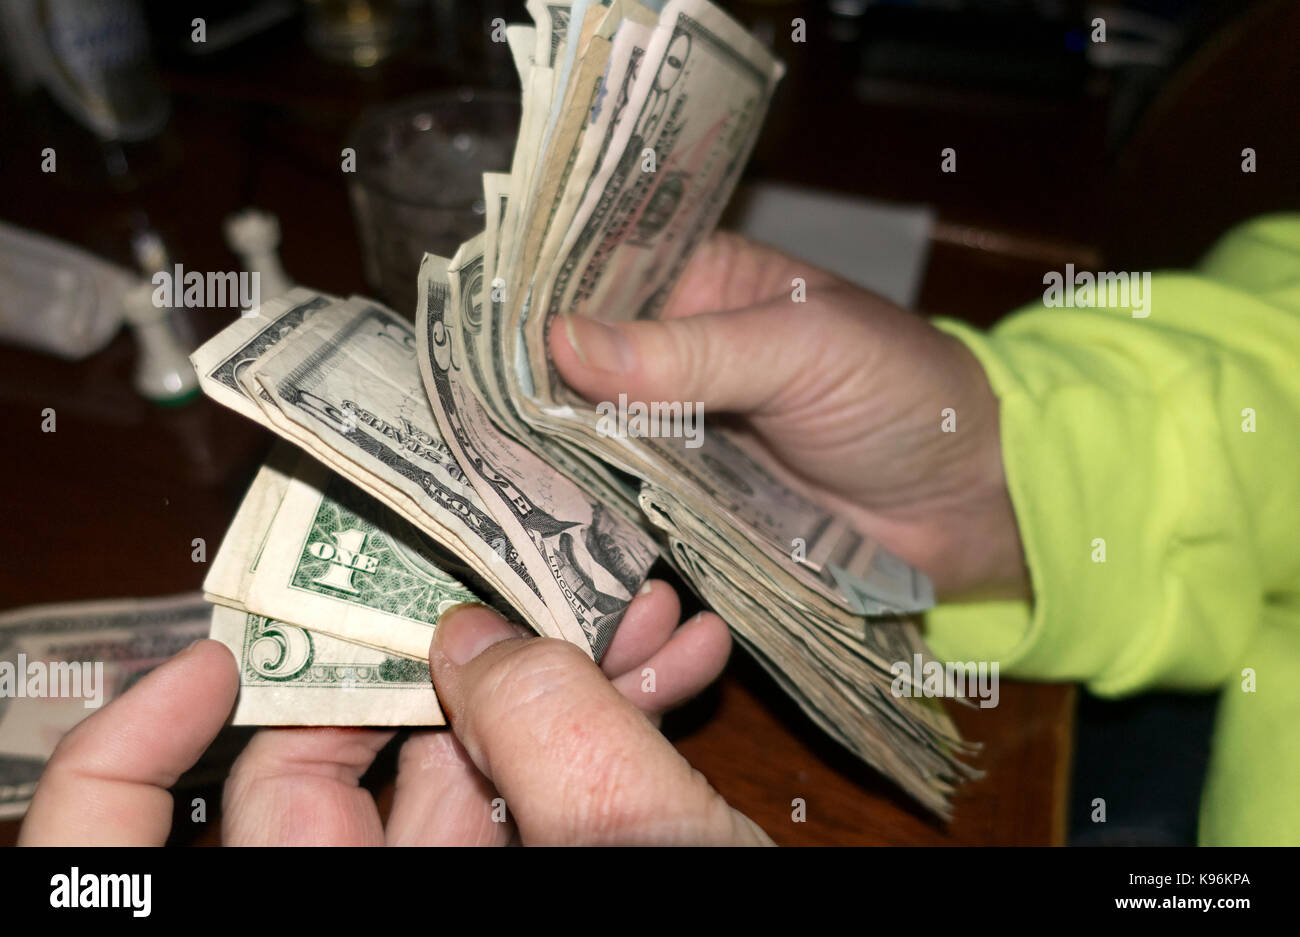 Paying restaurant bill from a wad of paper money. St Paul Minnesota MN USA - Stock Image